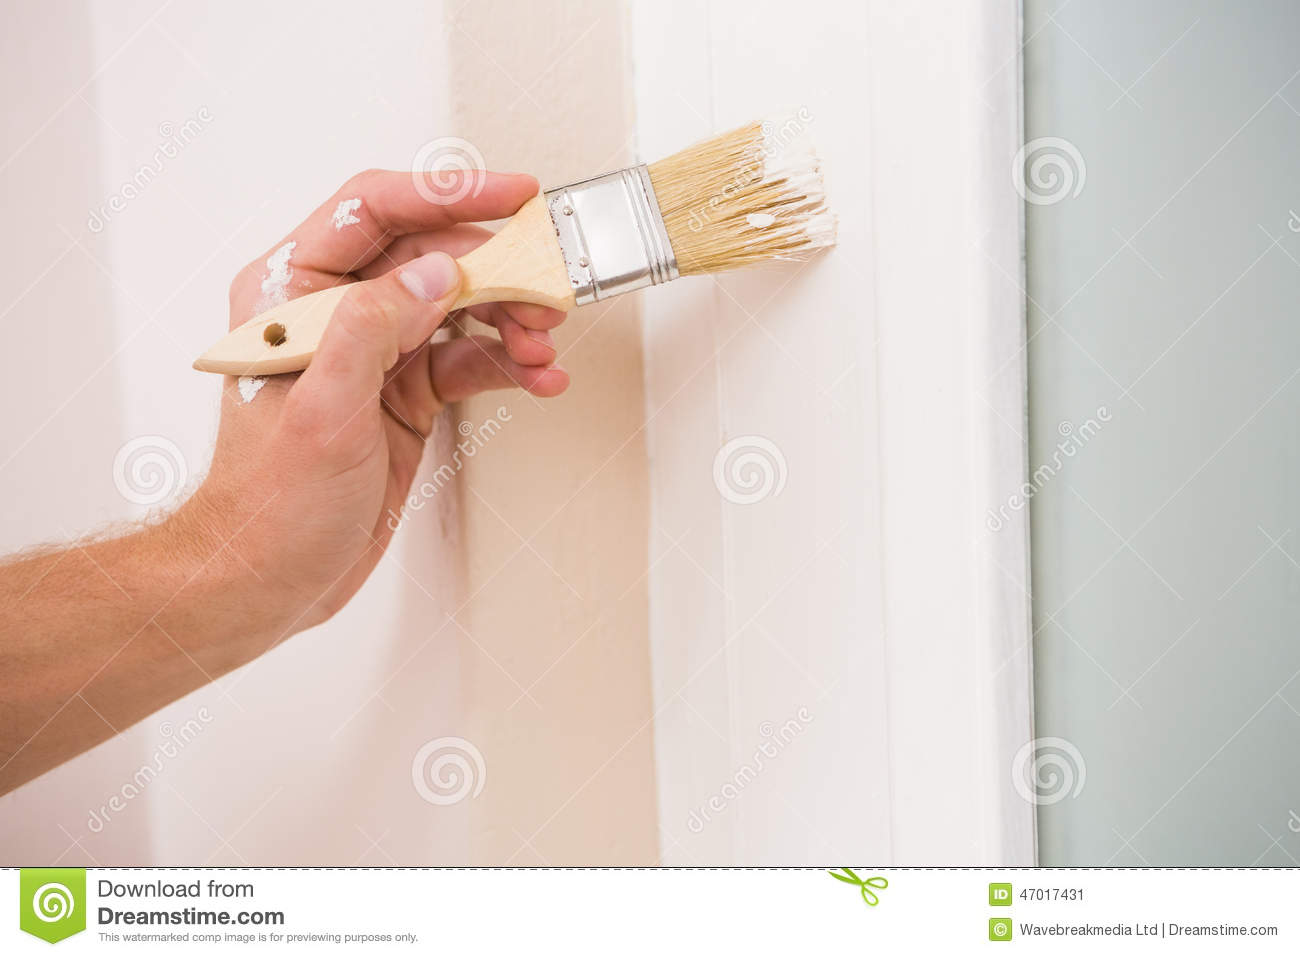 How To how to paint a door with a roller images : Painter Painting The Door White Stock Image - Image of industry ...